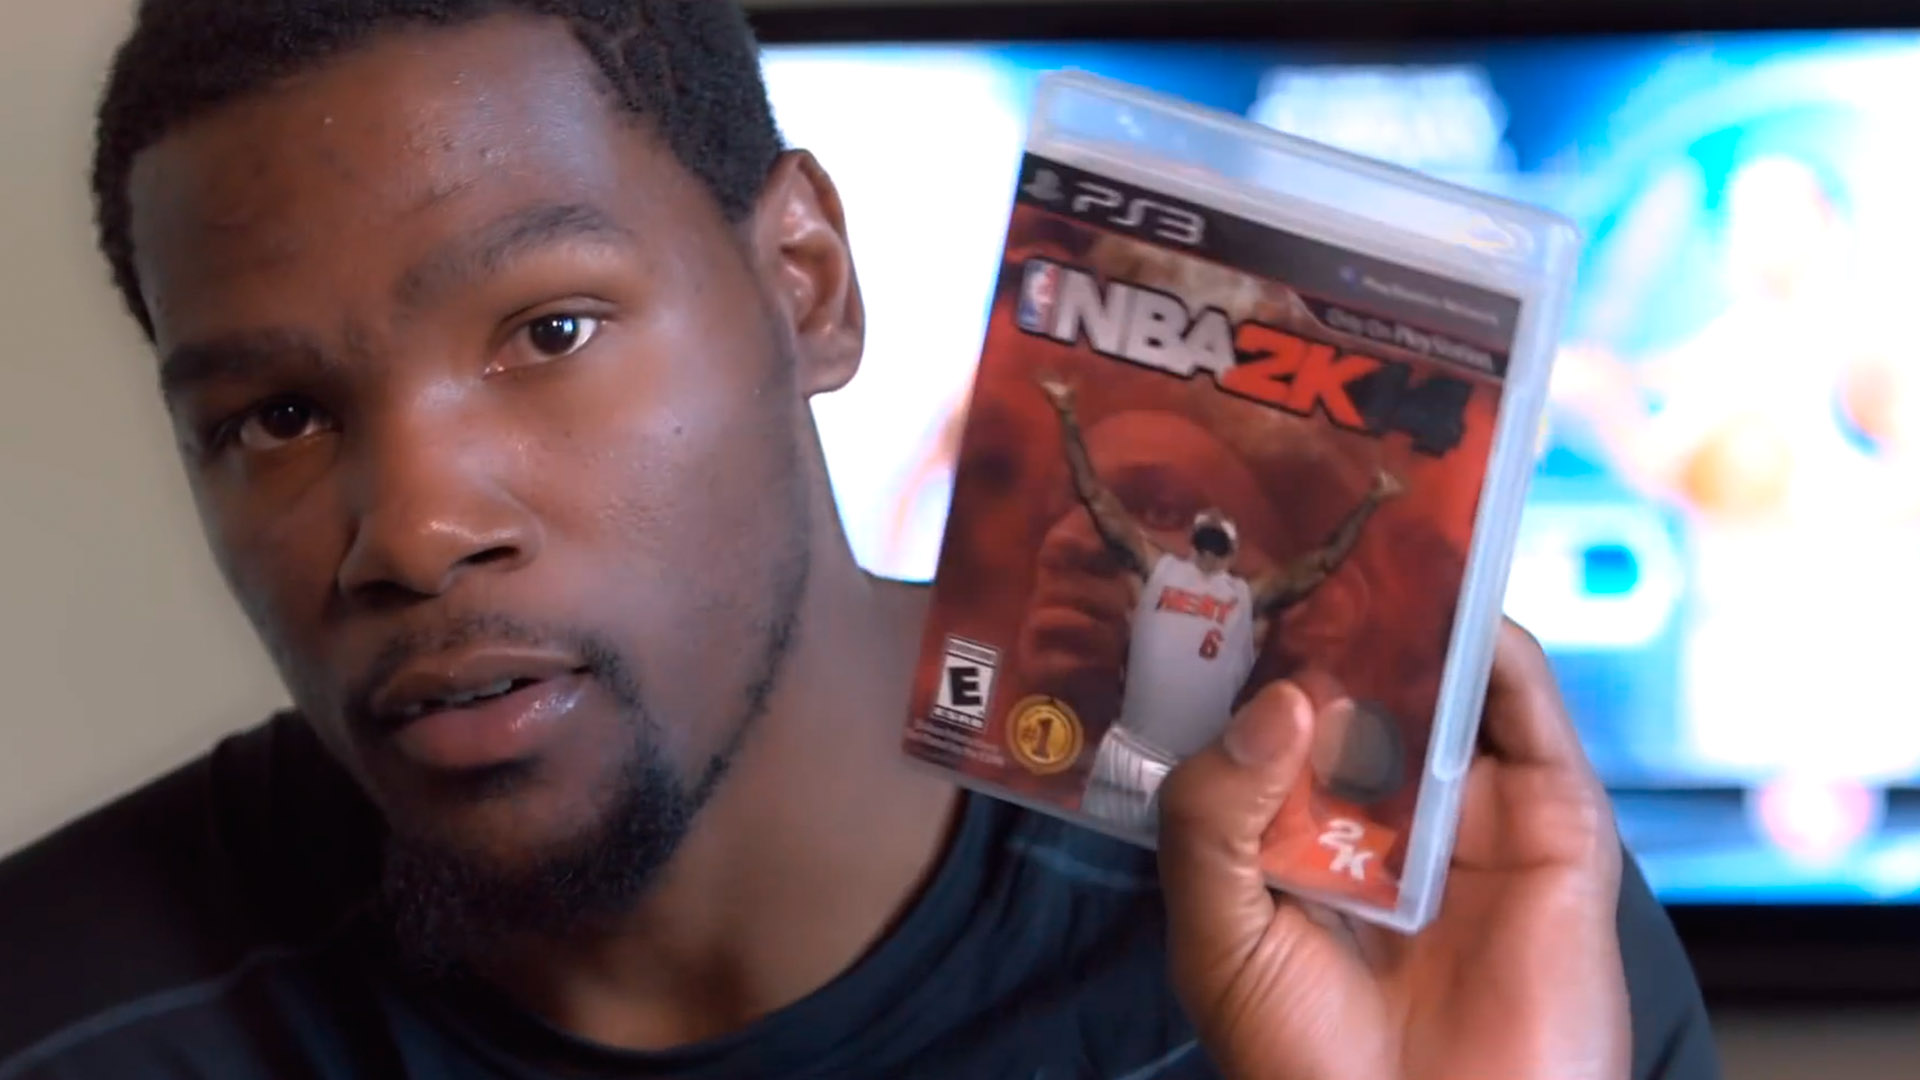 gibsonfilms_feature_image_nba2k14_durant